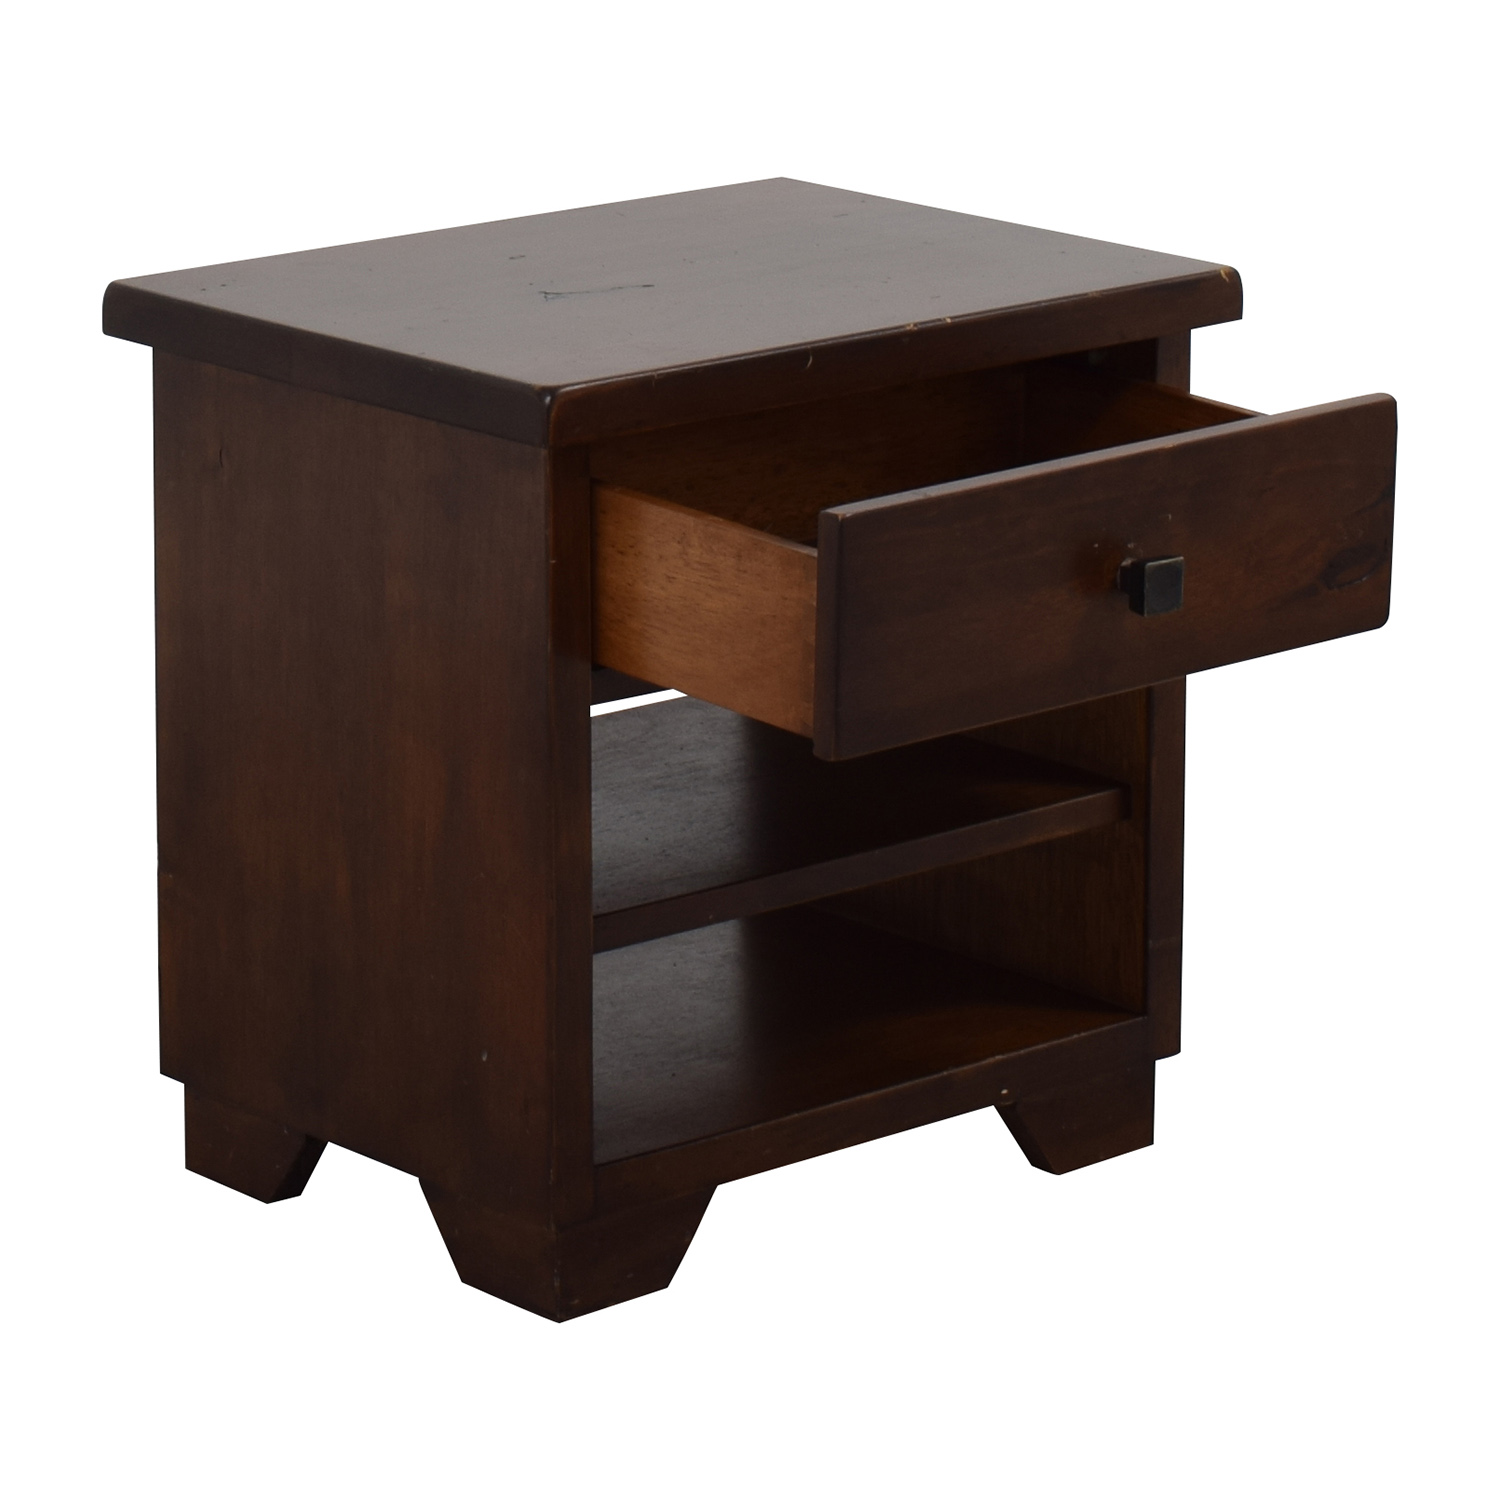 Superieur 90% OFF   Pottery Barn Pottery Barn One Drawer Bedside Table / Tables